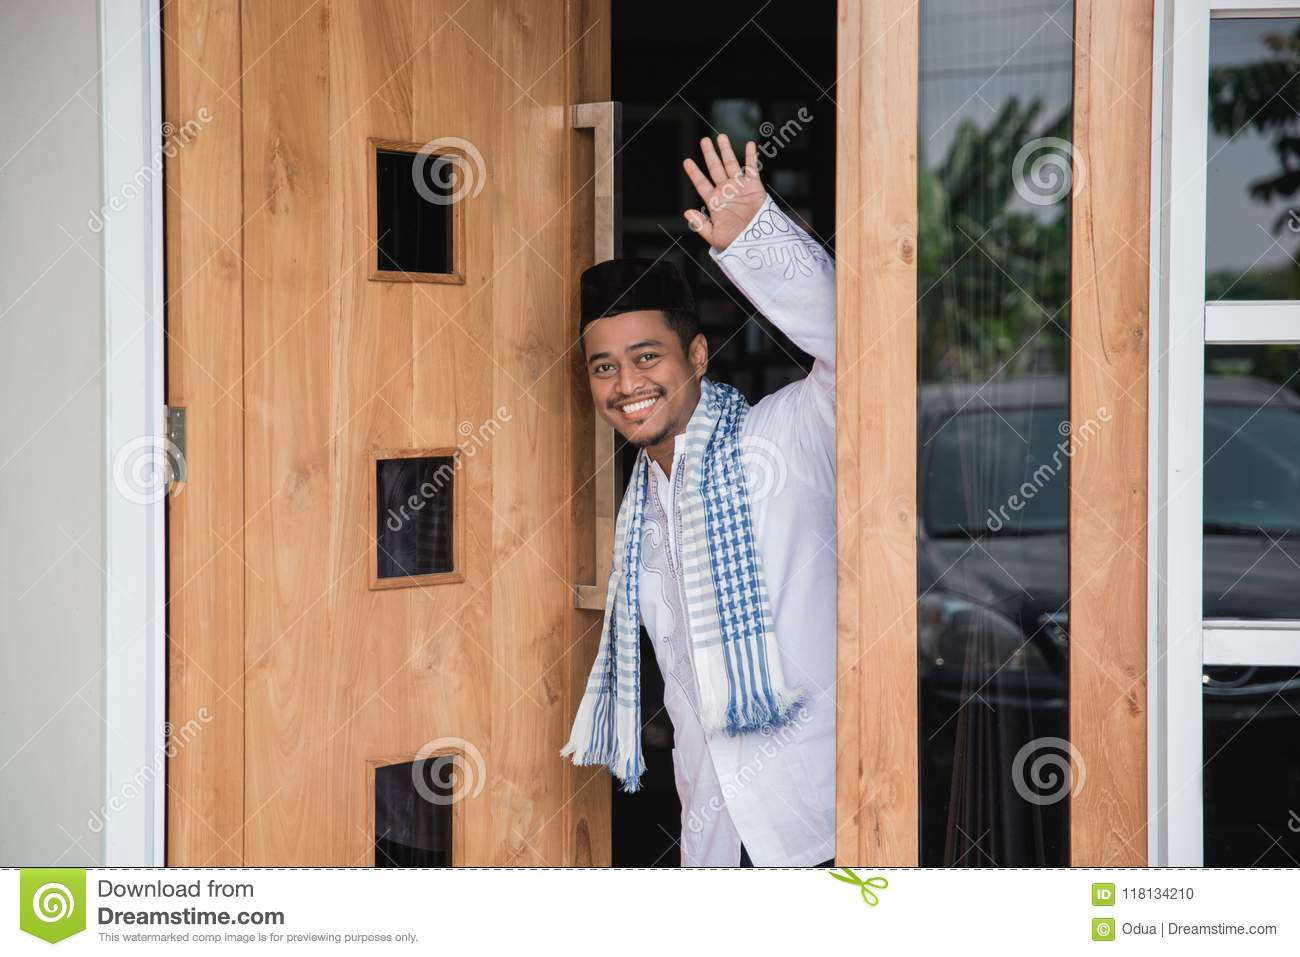 Muslim Man Greeting Stock Photo Image Of Islam Greeting 118134210